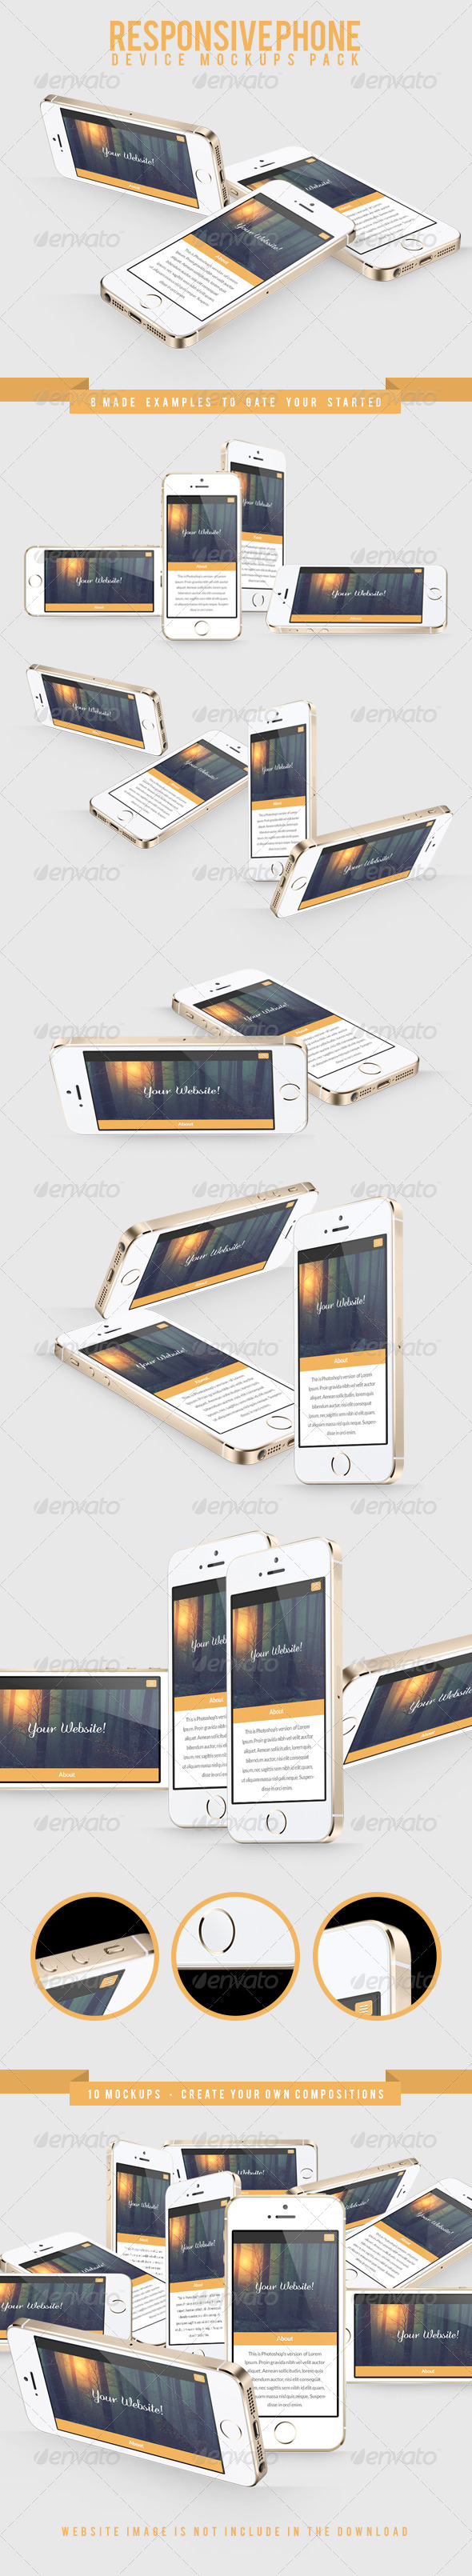 Responsive Phone Device Mockups Pack